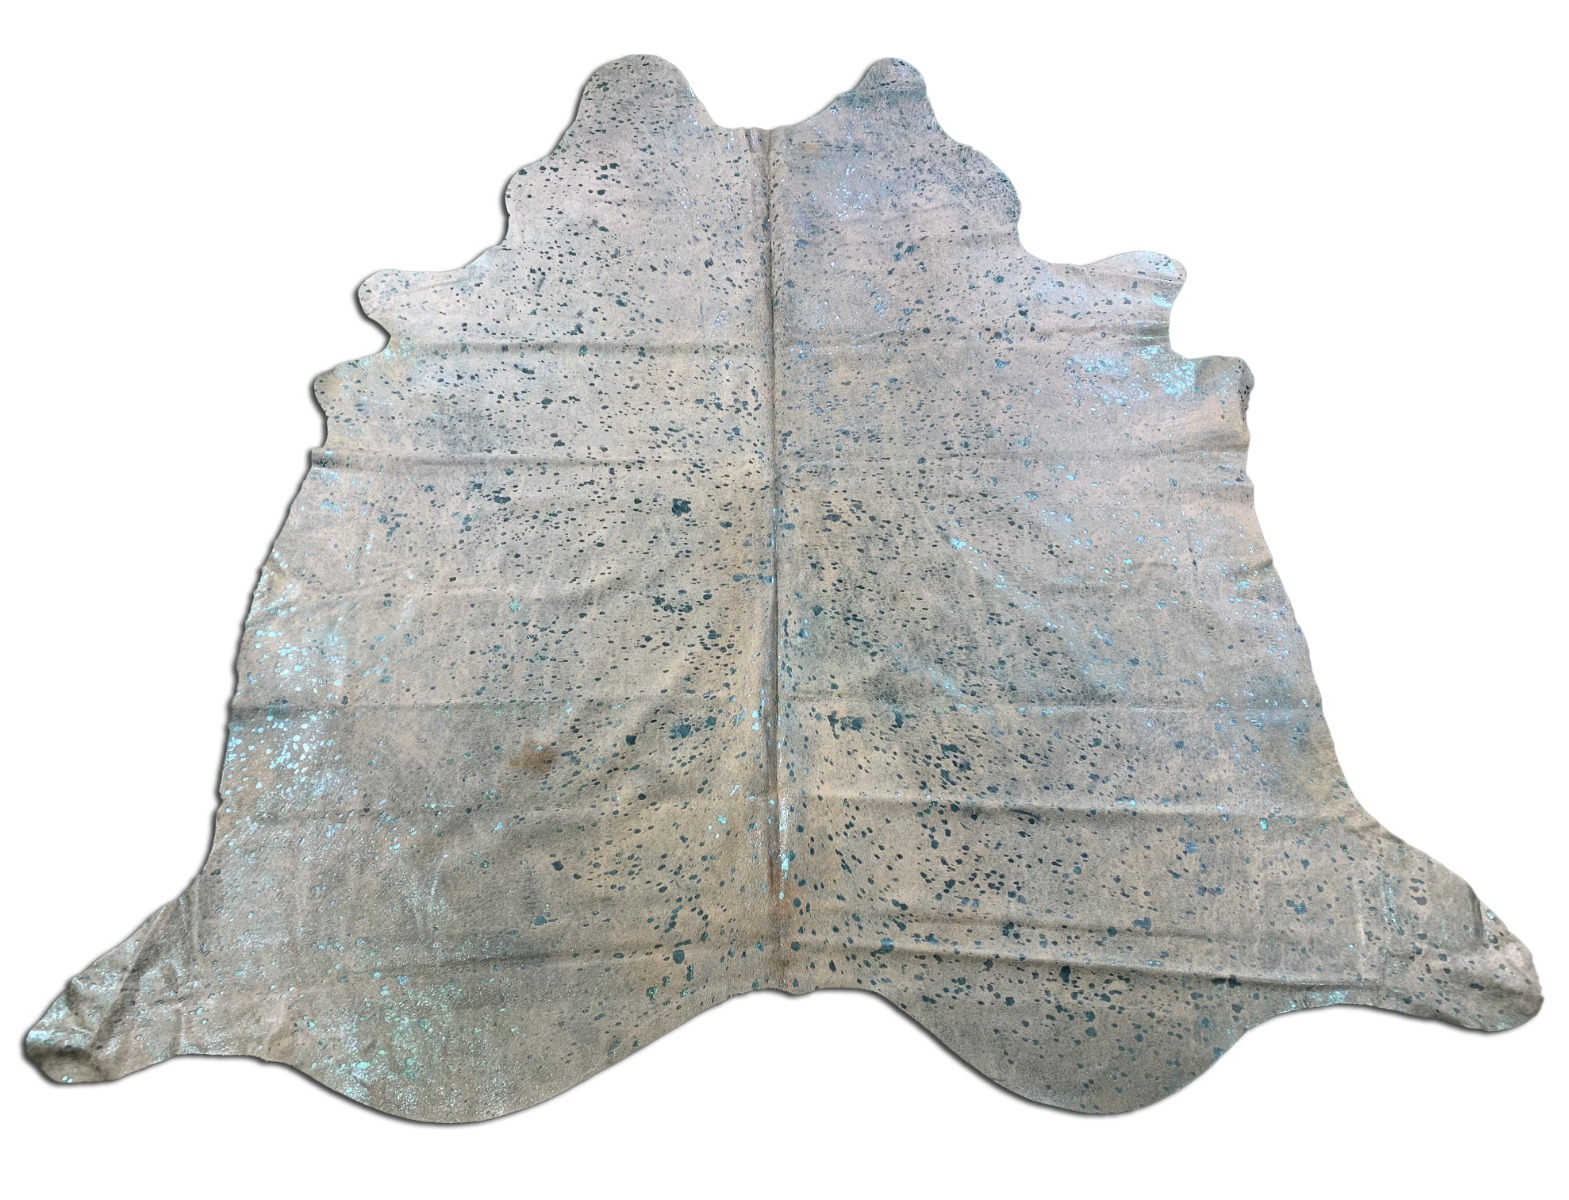 A-1342 Turquoise Metallic Cowhide Rug Size: 7 3/4' X 7 1/4'